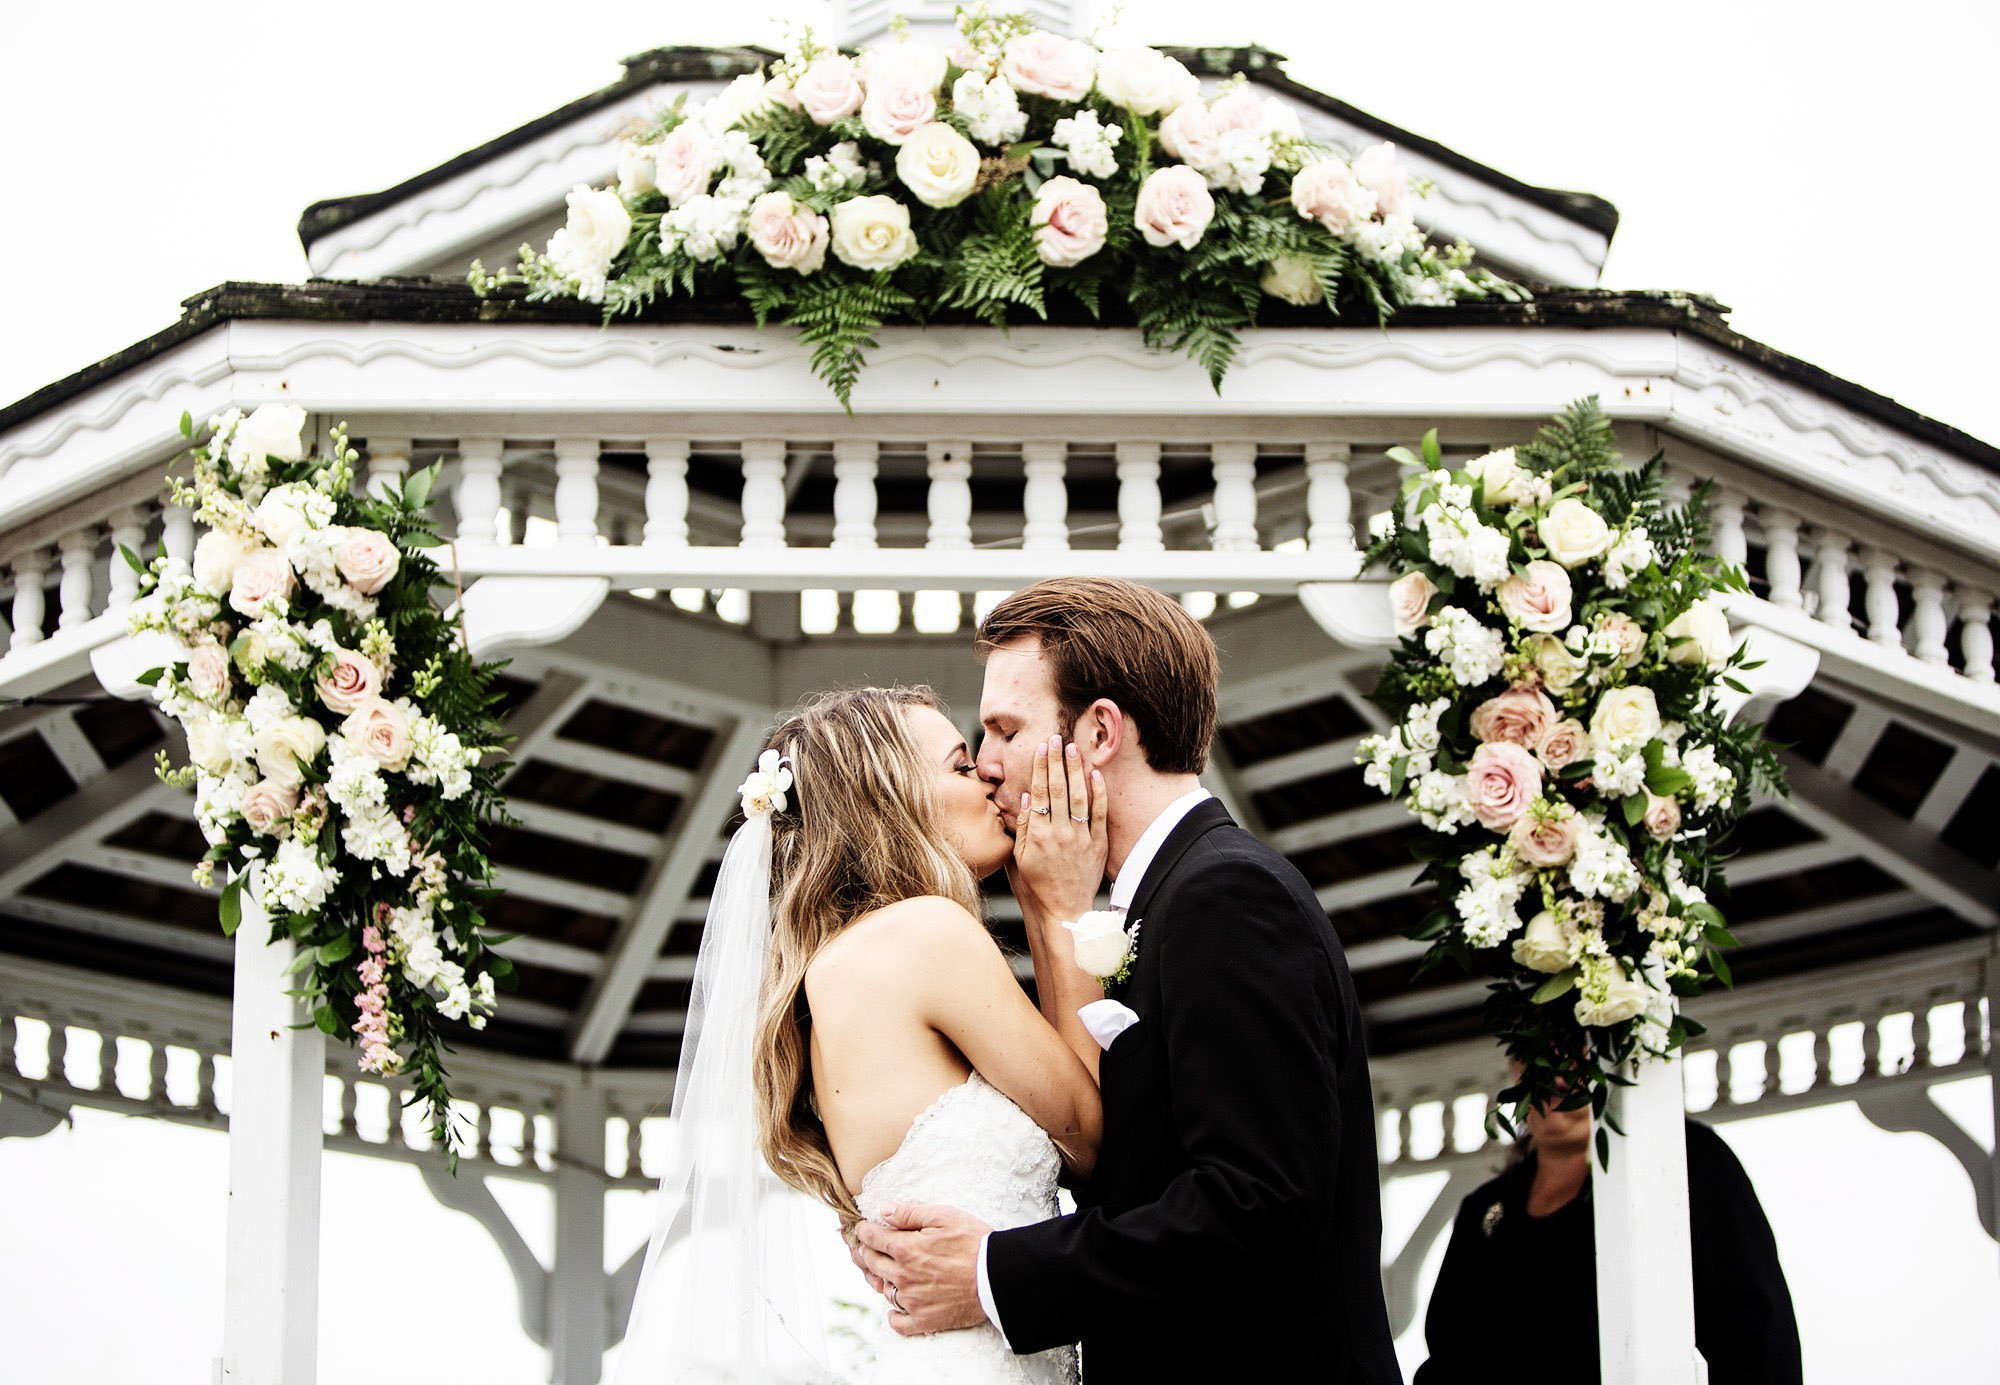 The couple share their first kiss during the White Cliffs Country Club Wedding ceremony.